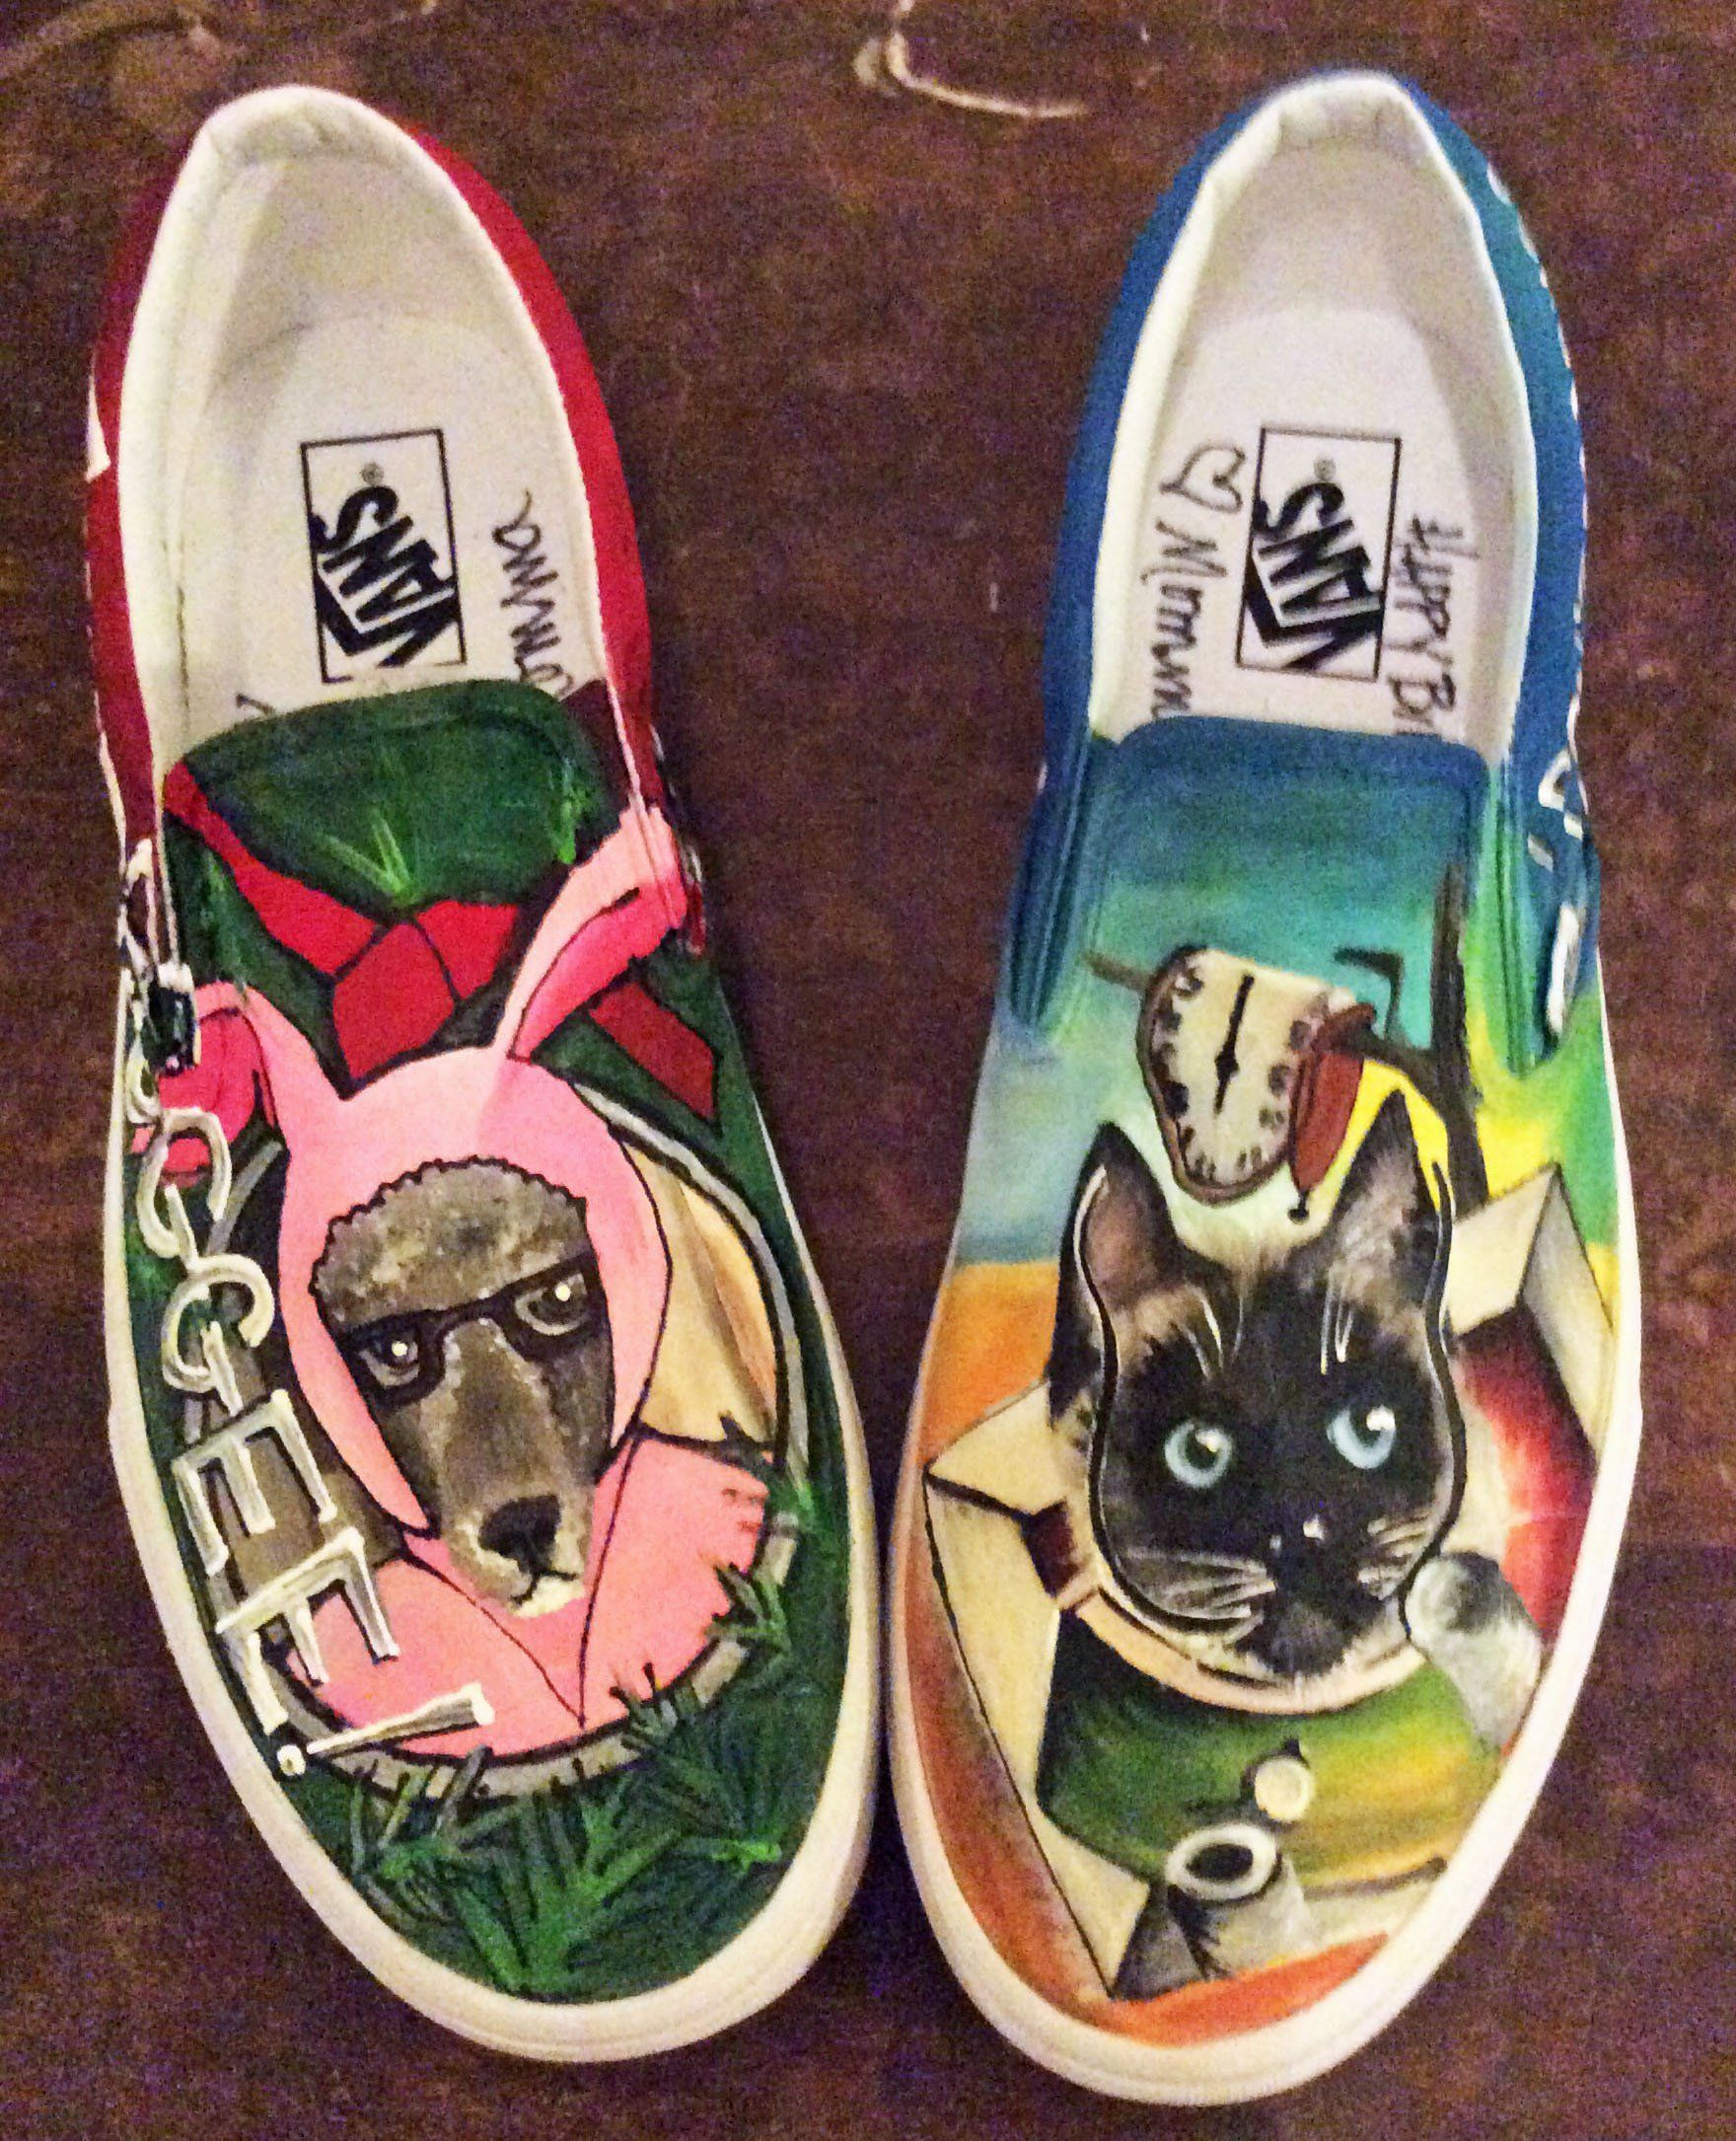 cf8c9bdc02 Vans Custom Painted Pet Portrait Slip on Shoes